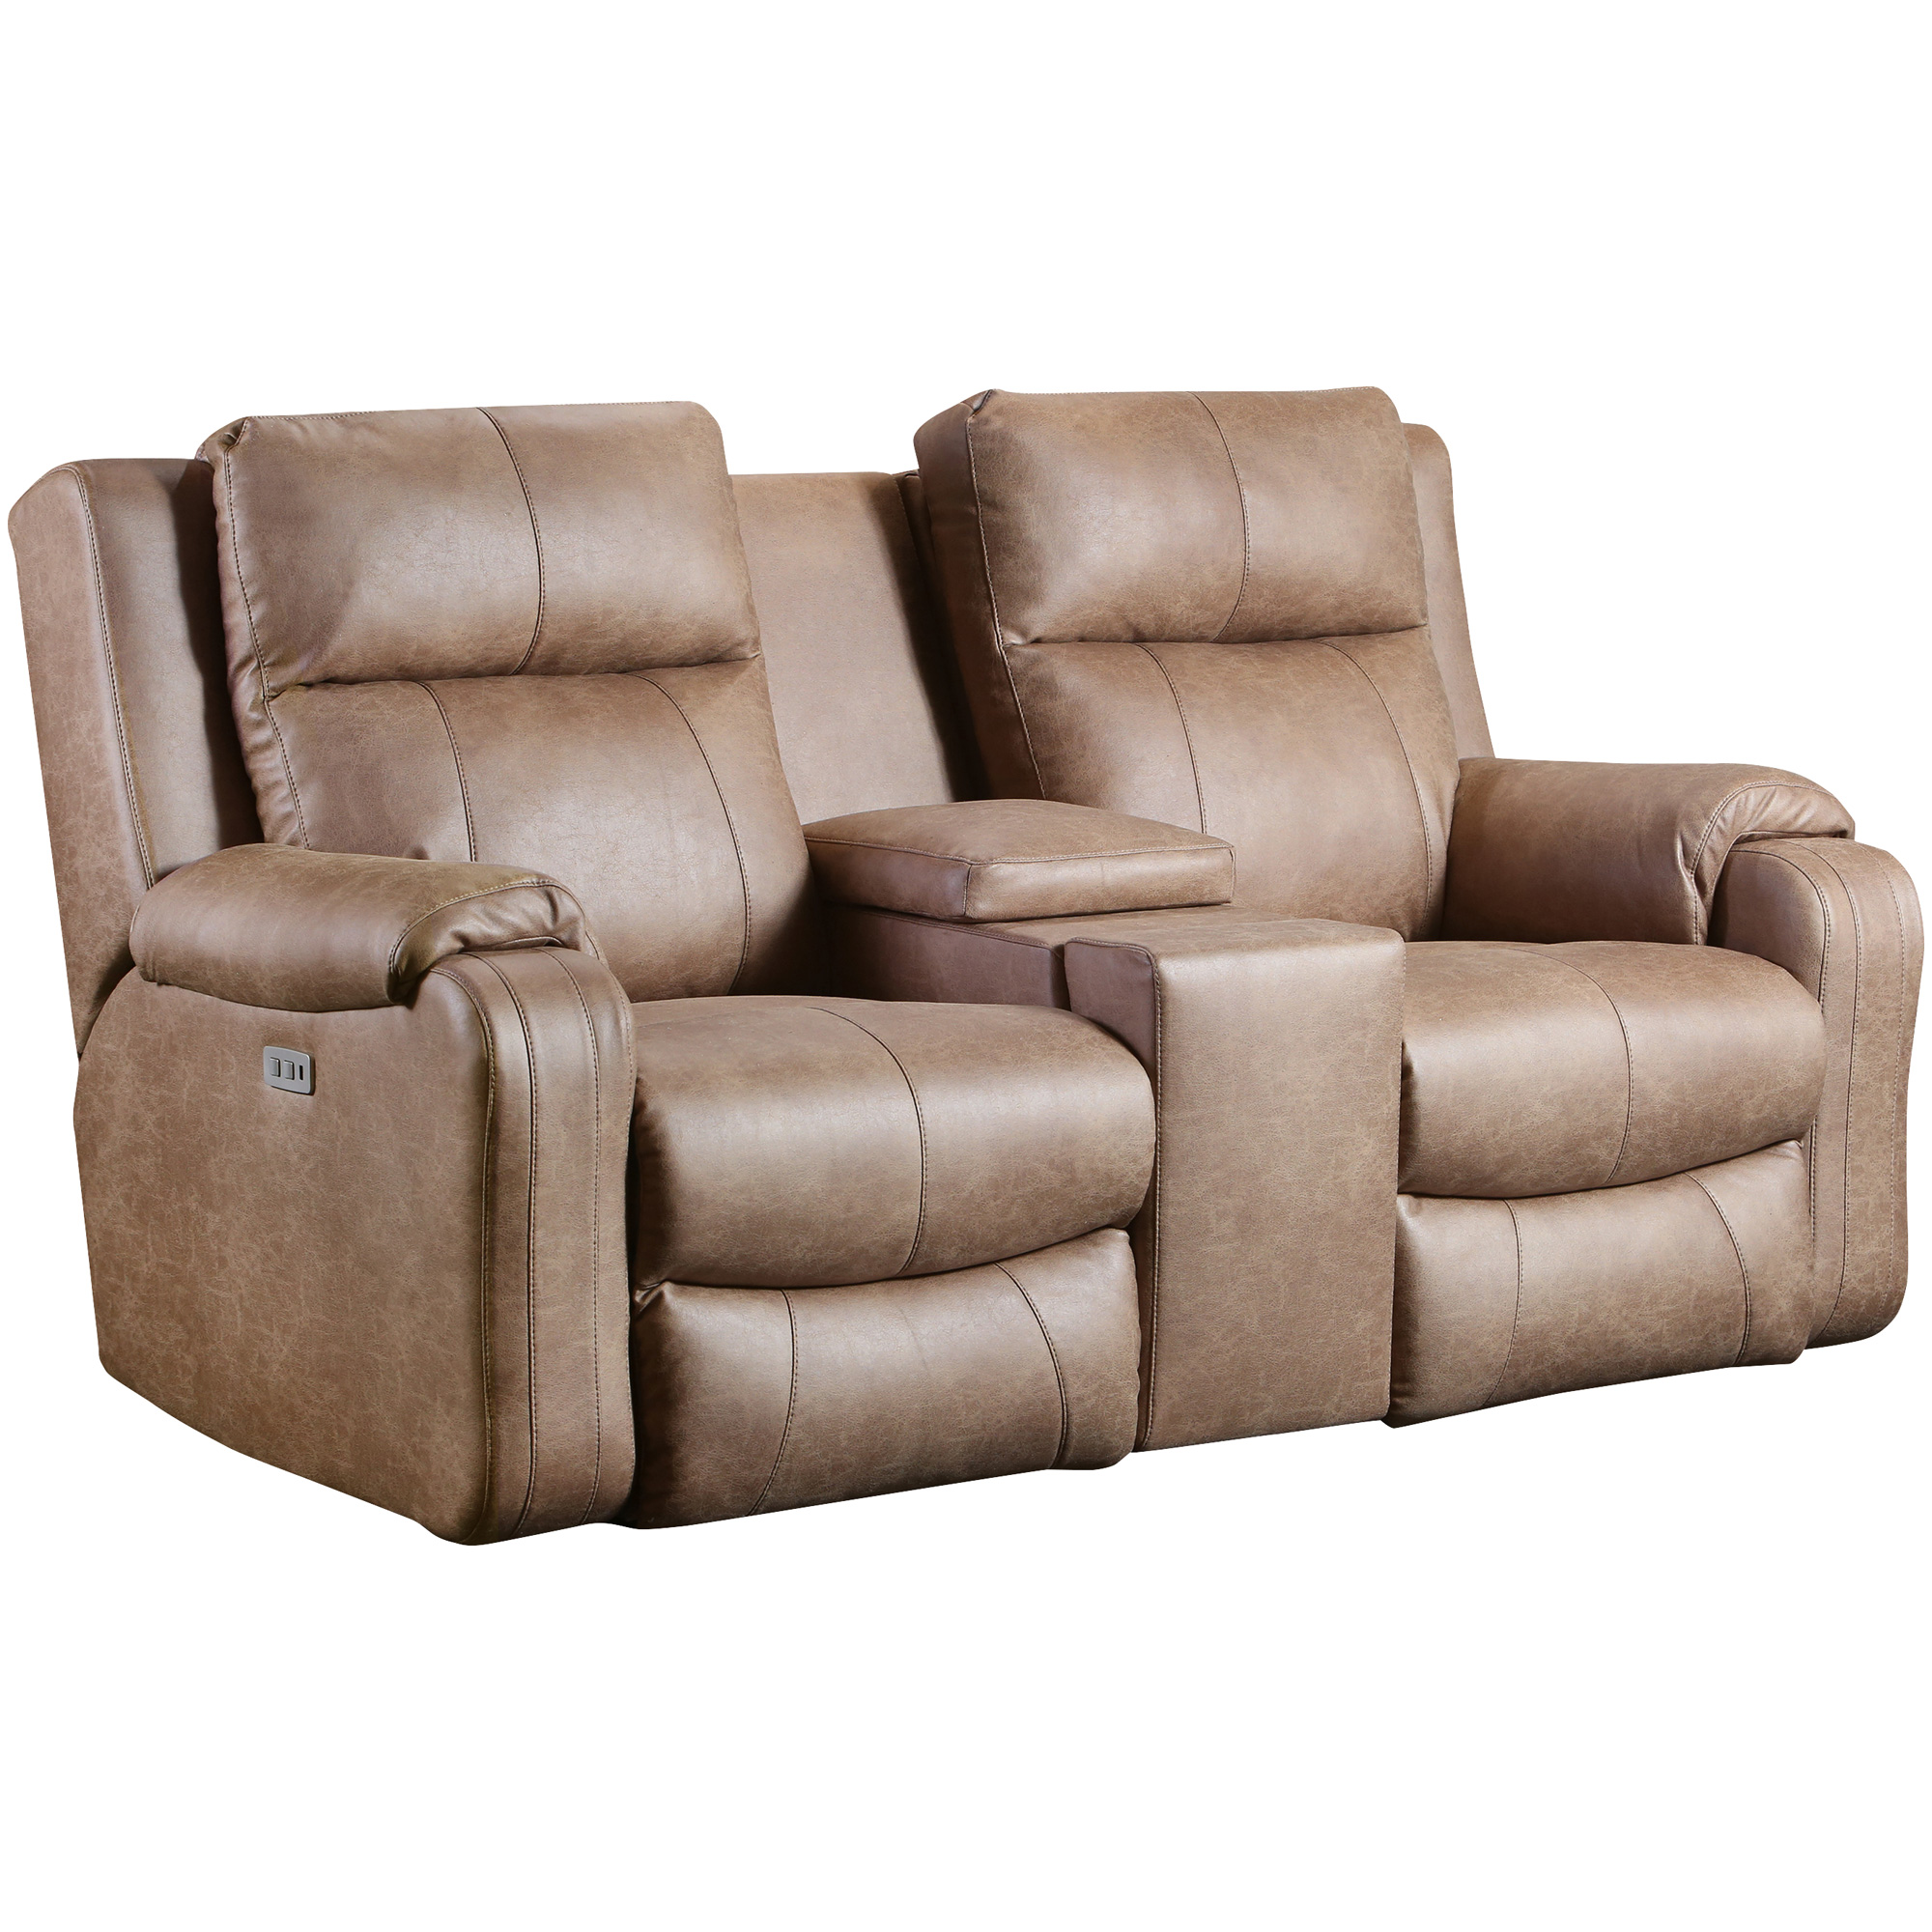 Southern Motion | Contour Vintage Power+ Reclining Console Loveseat Sofa